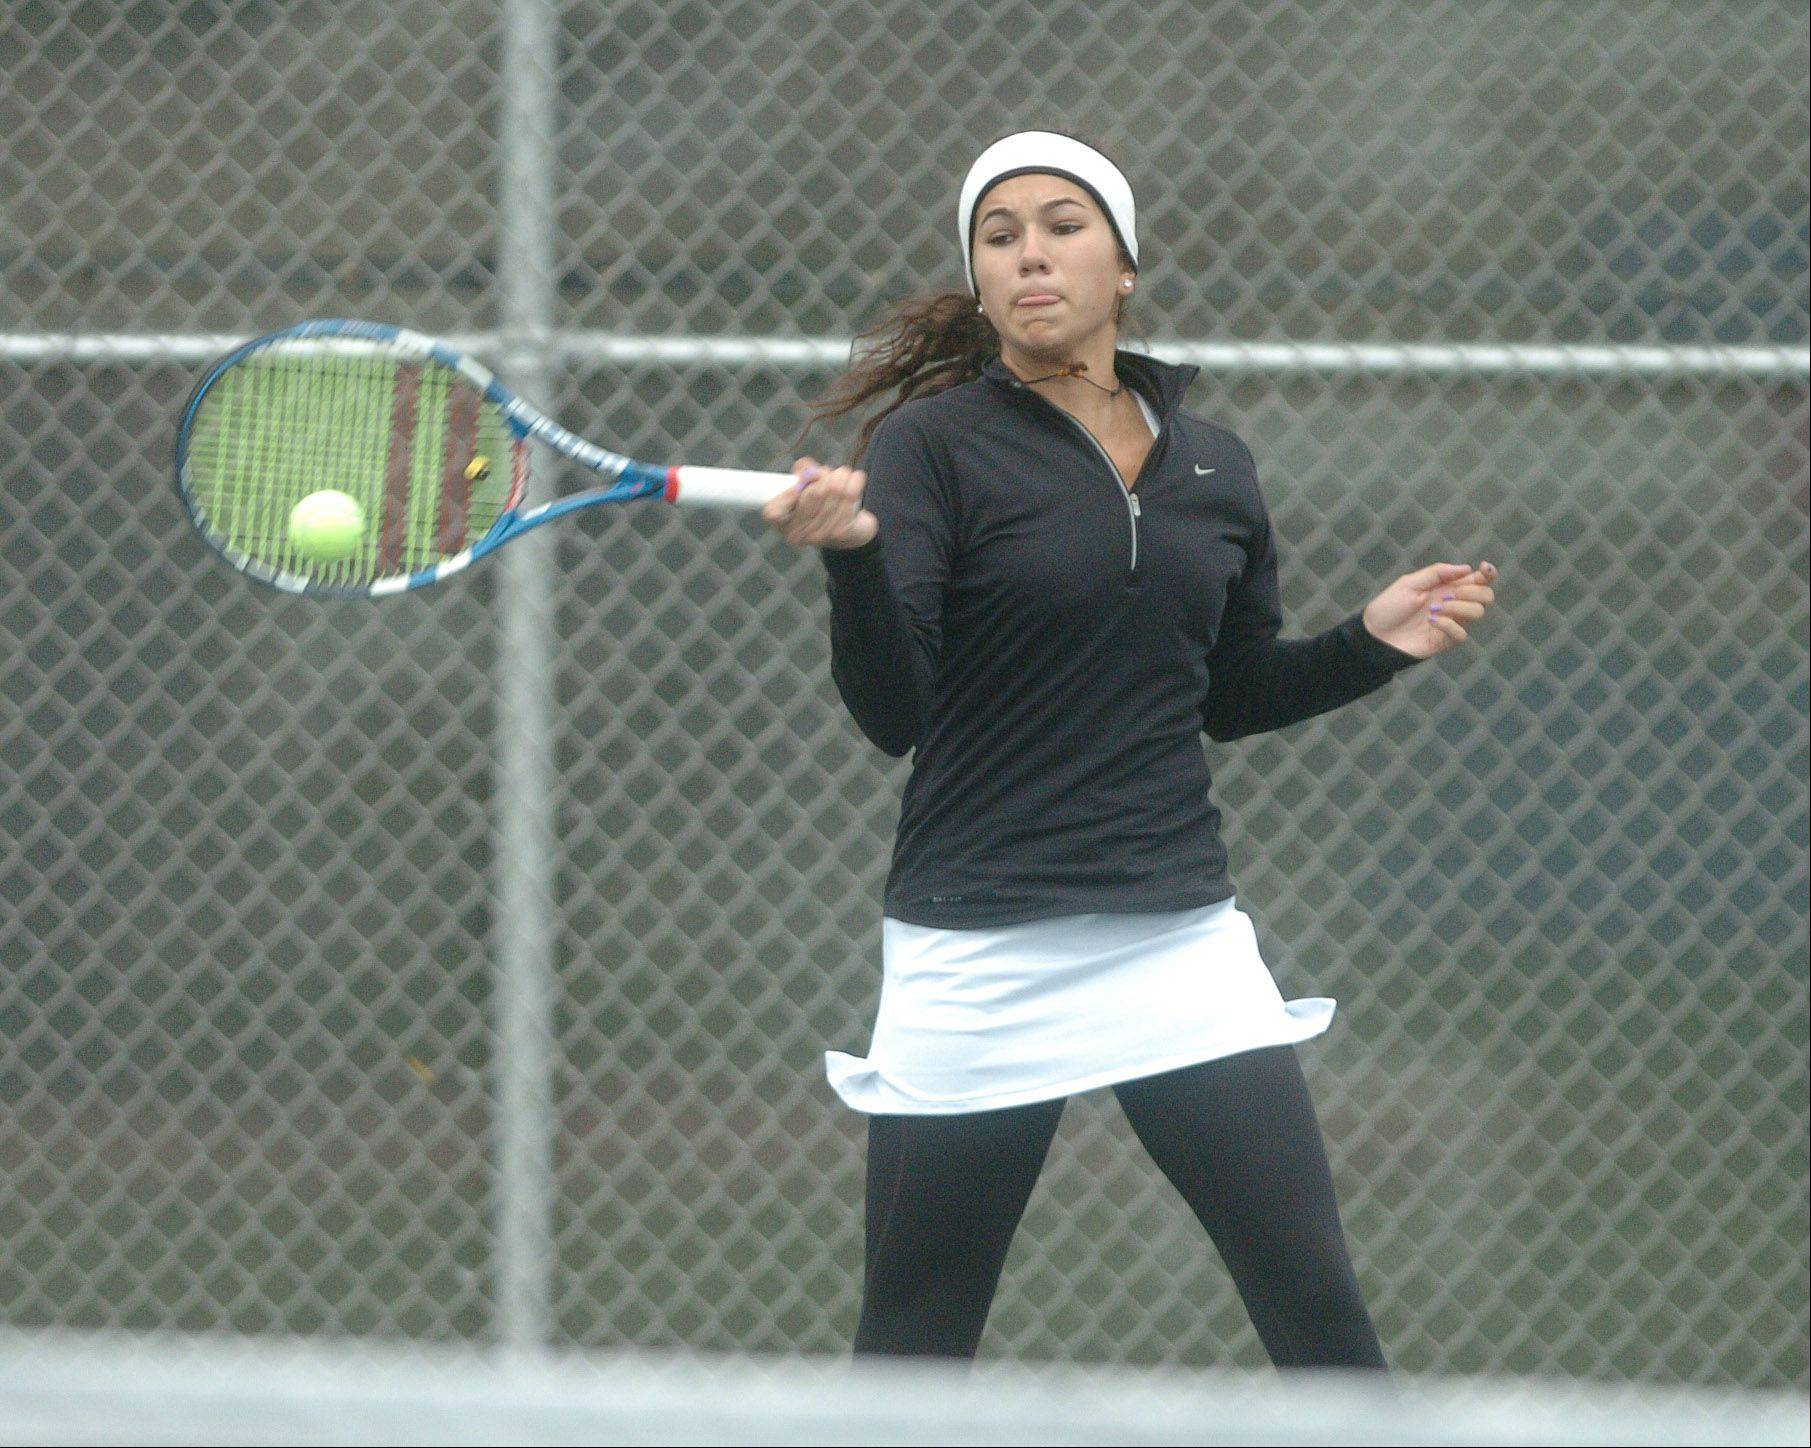 Leah Tzakis of Benet takes part in the Naperville North girls tennis sectional at Naperville North High School Saturday.